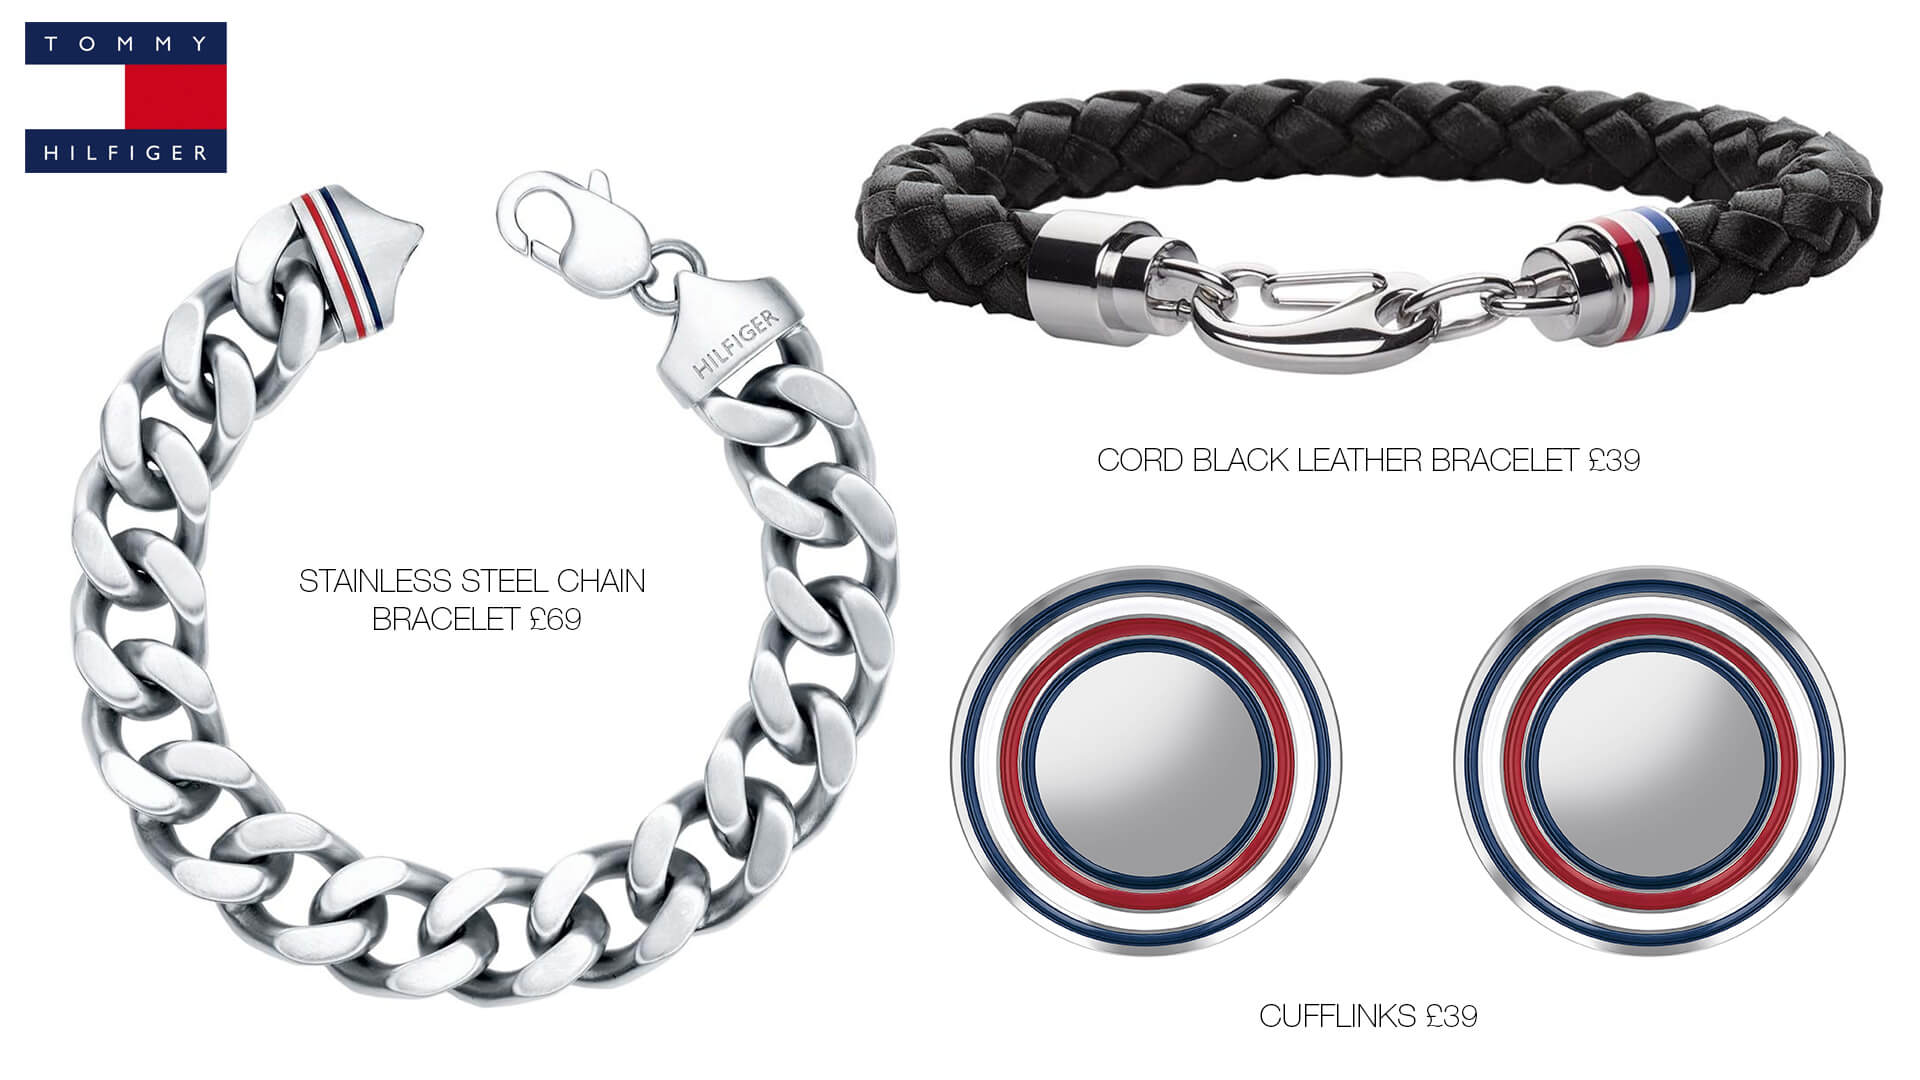 Tommy Hilfiger Men's Jewellery